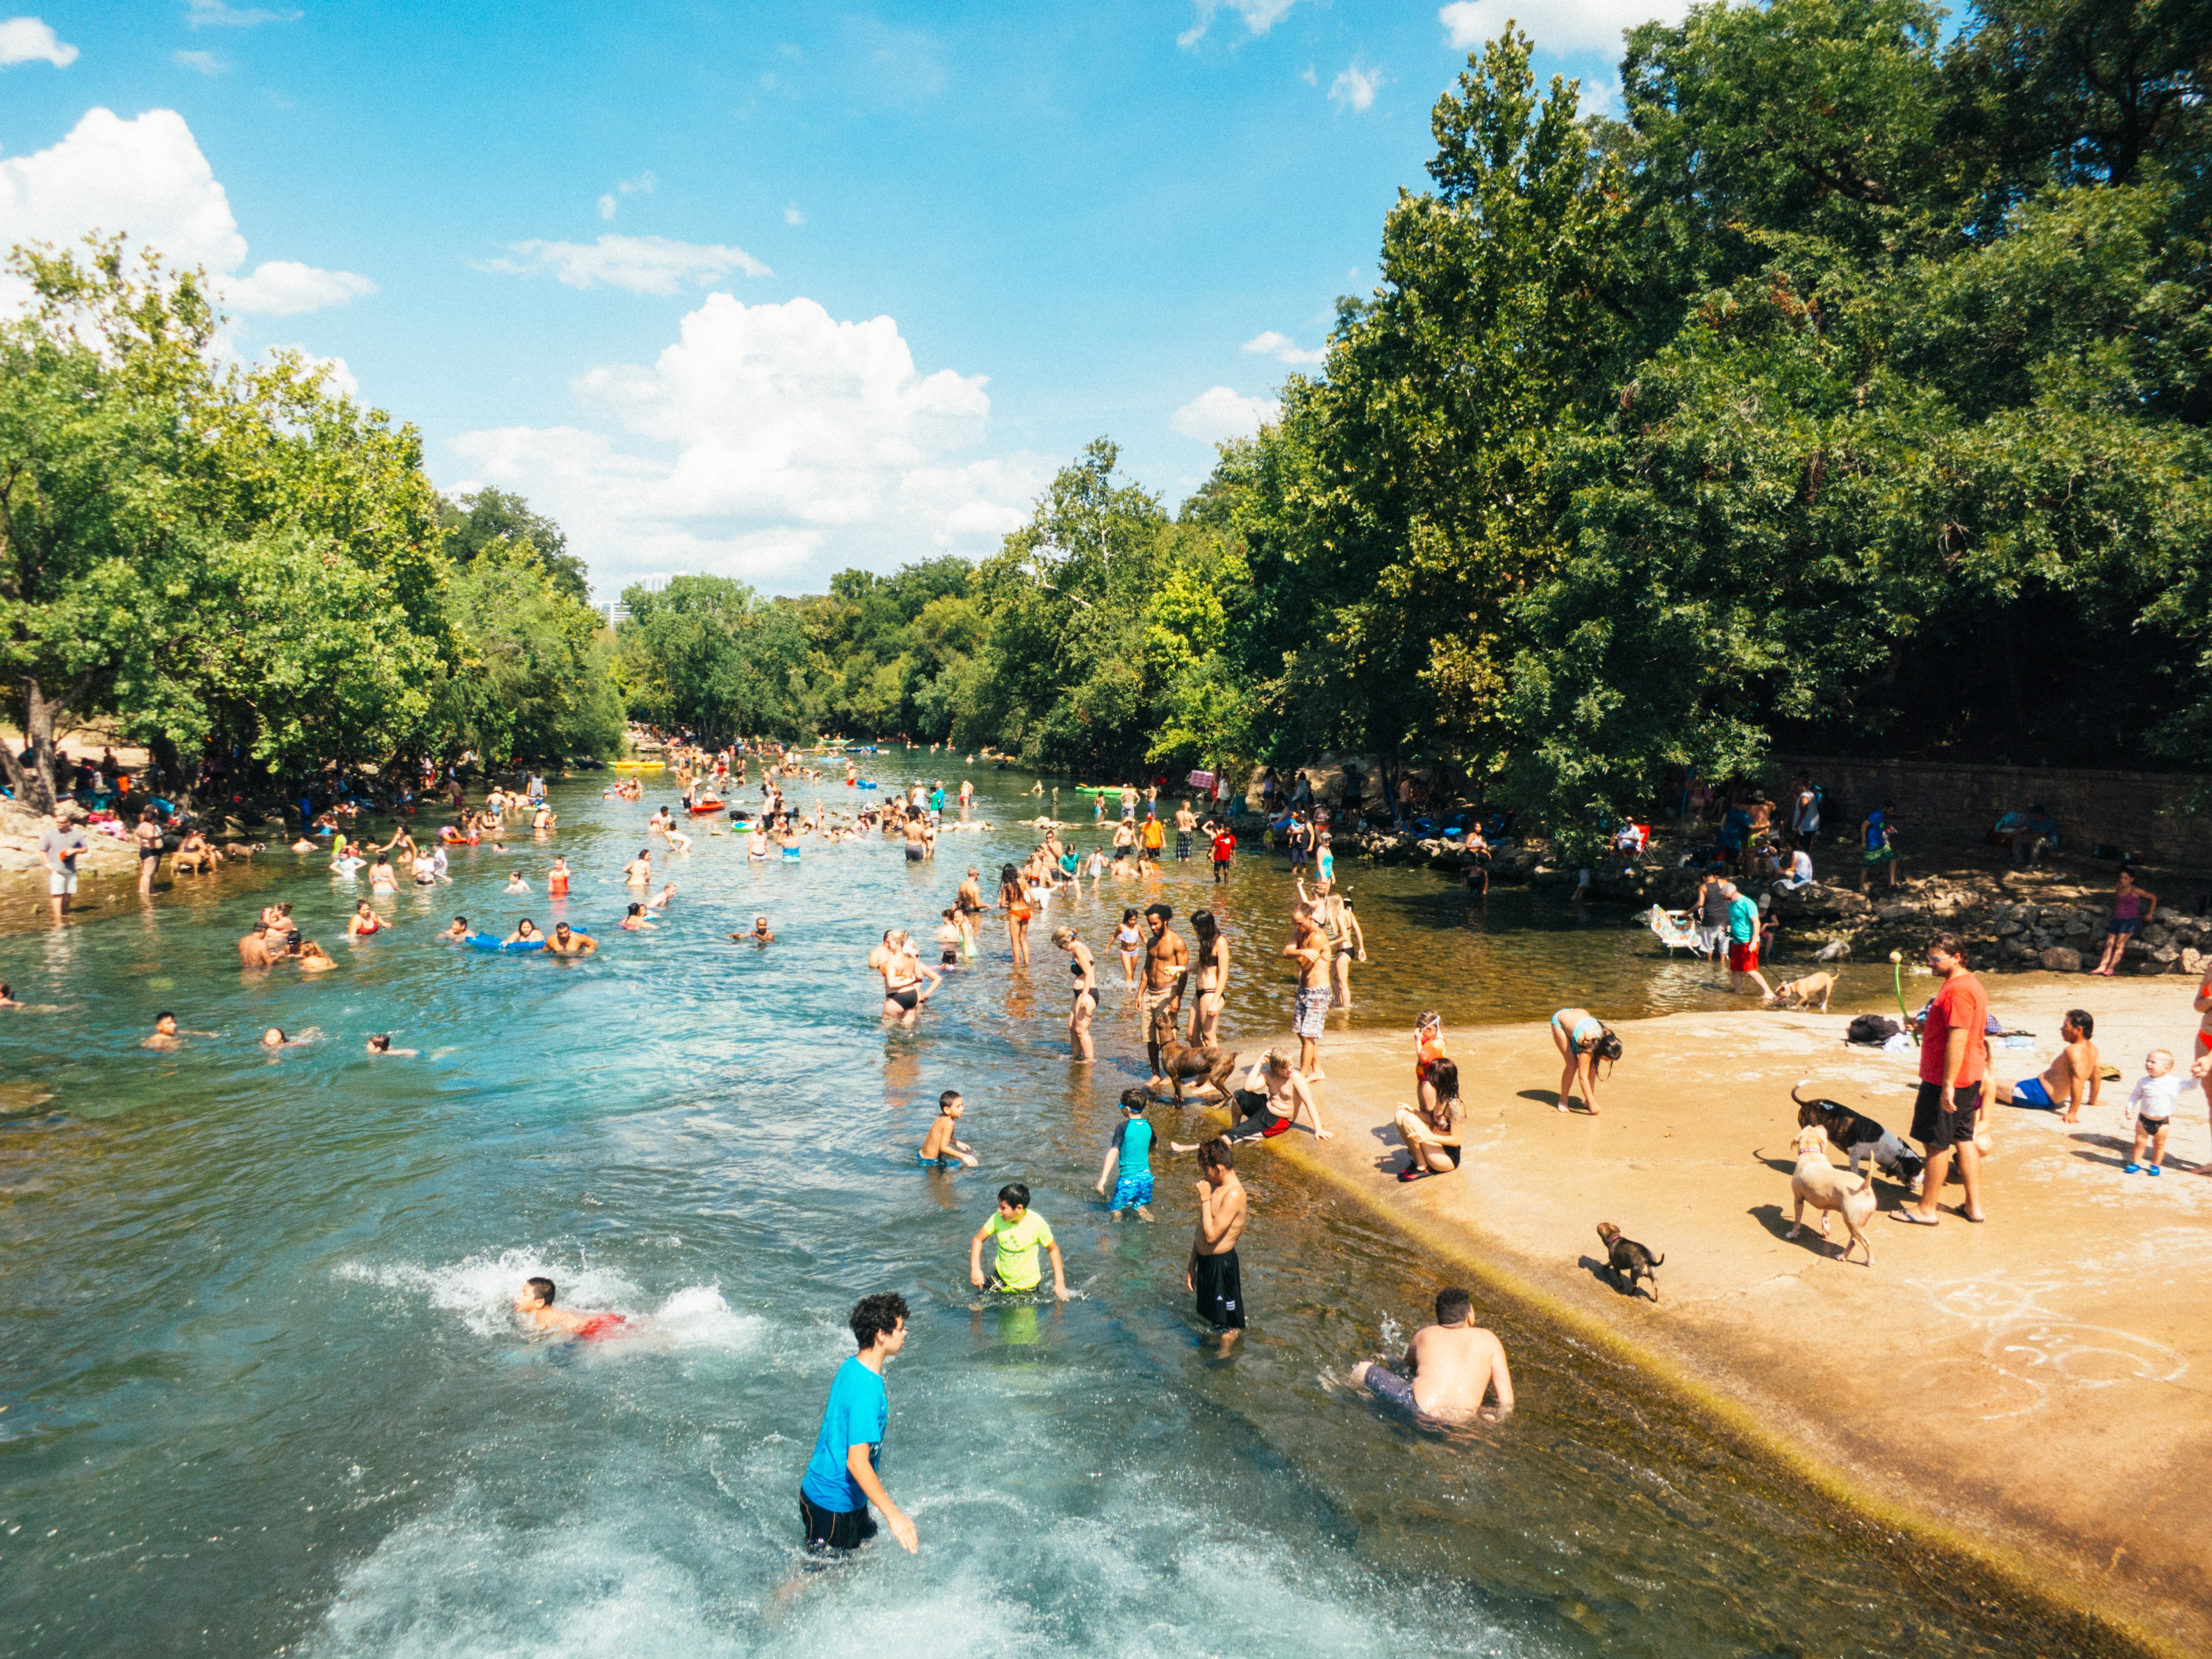 Photo of people cooling down in a river on a hot day